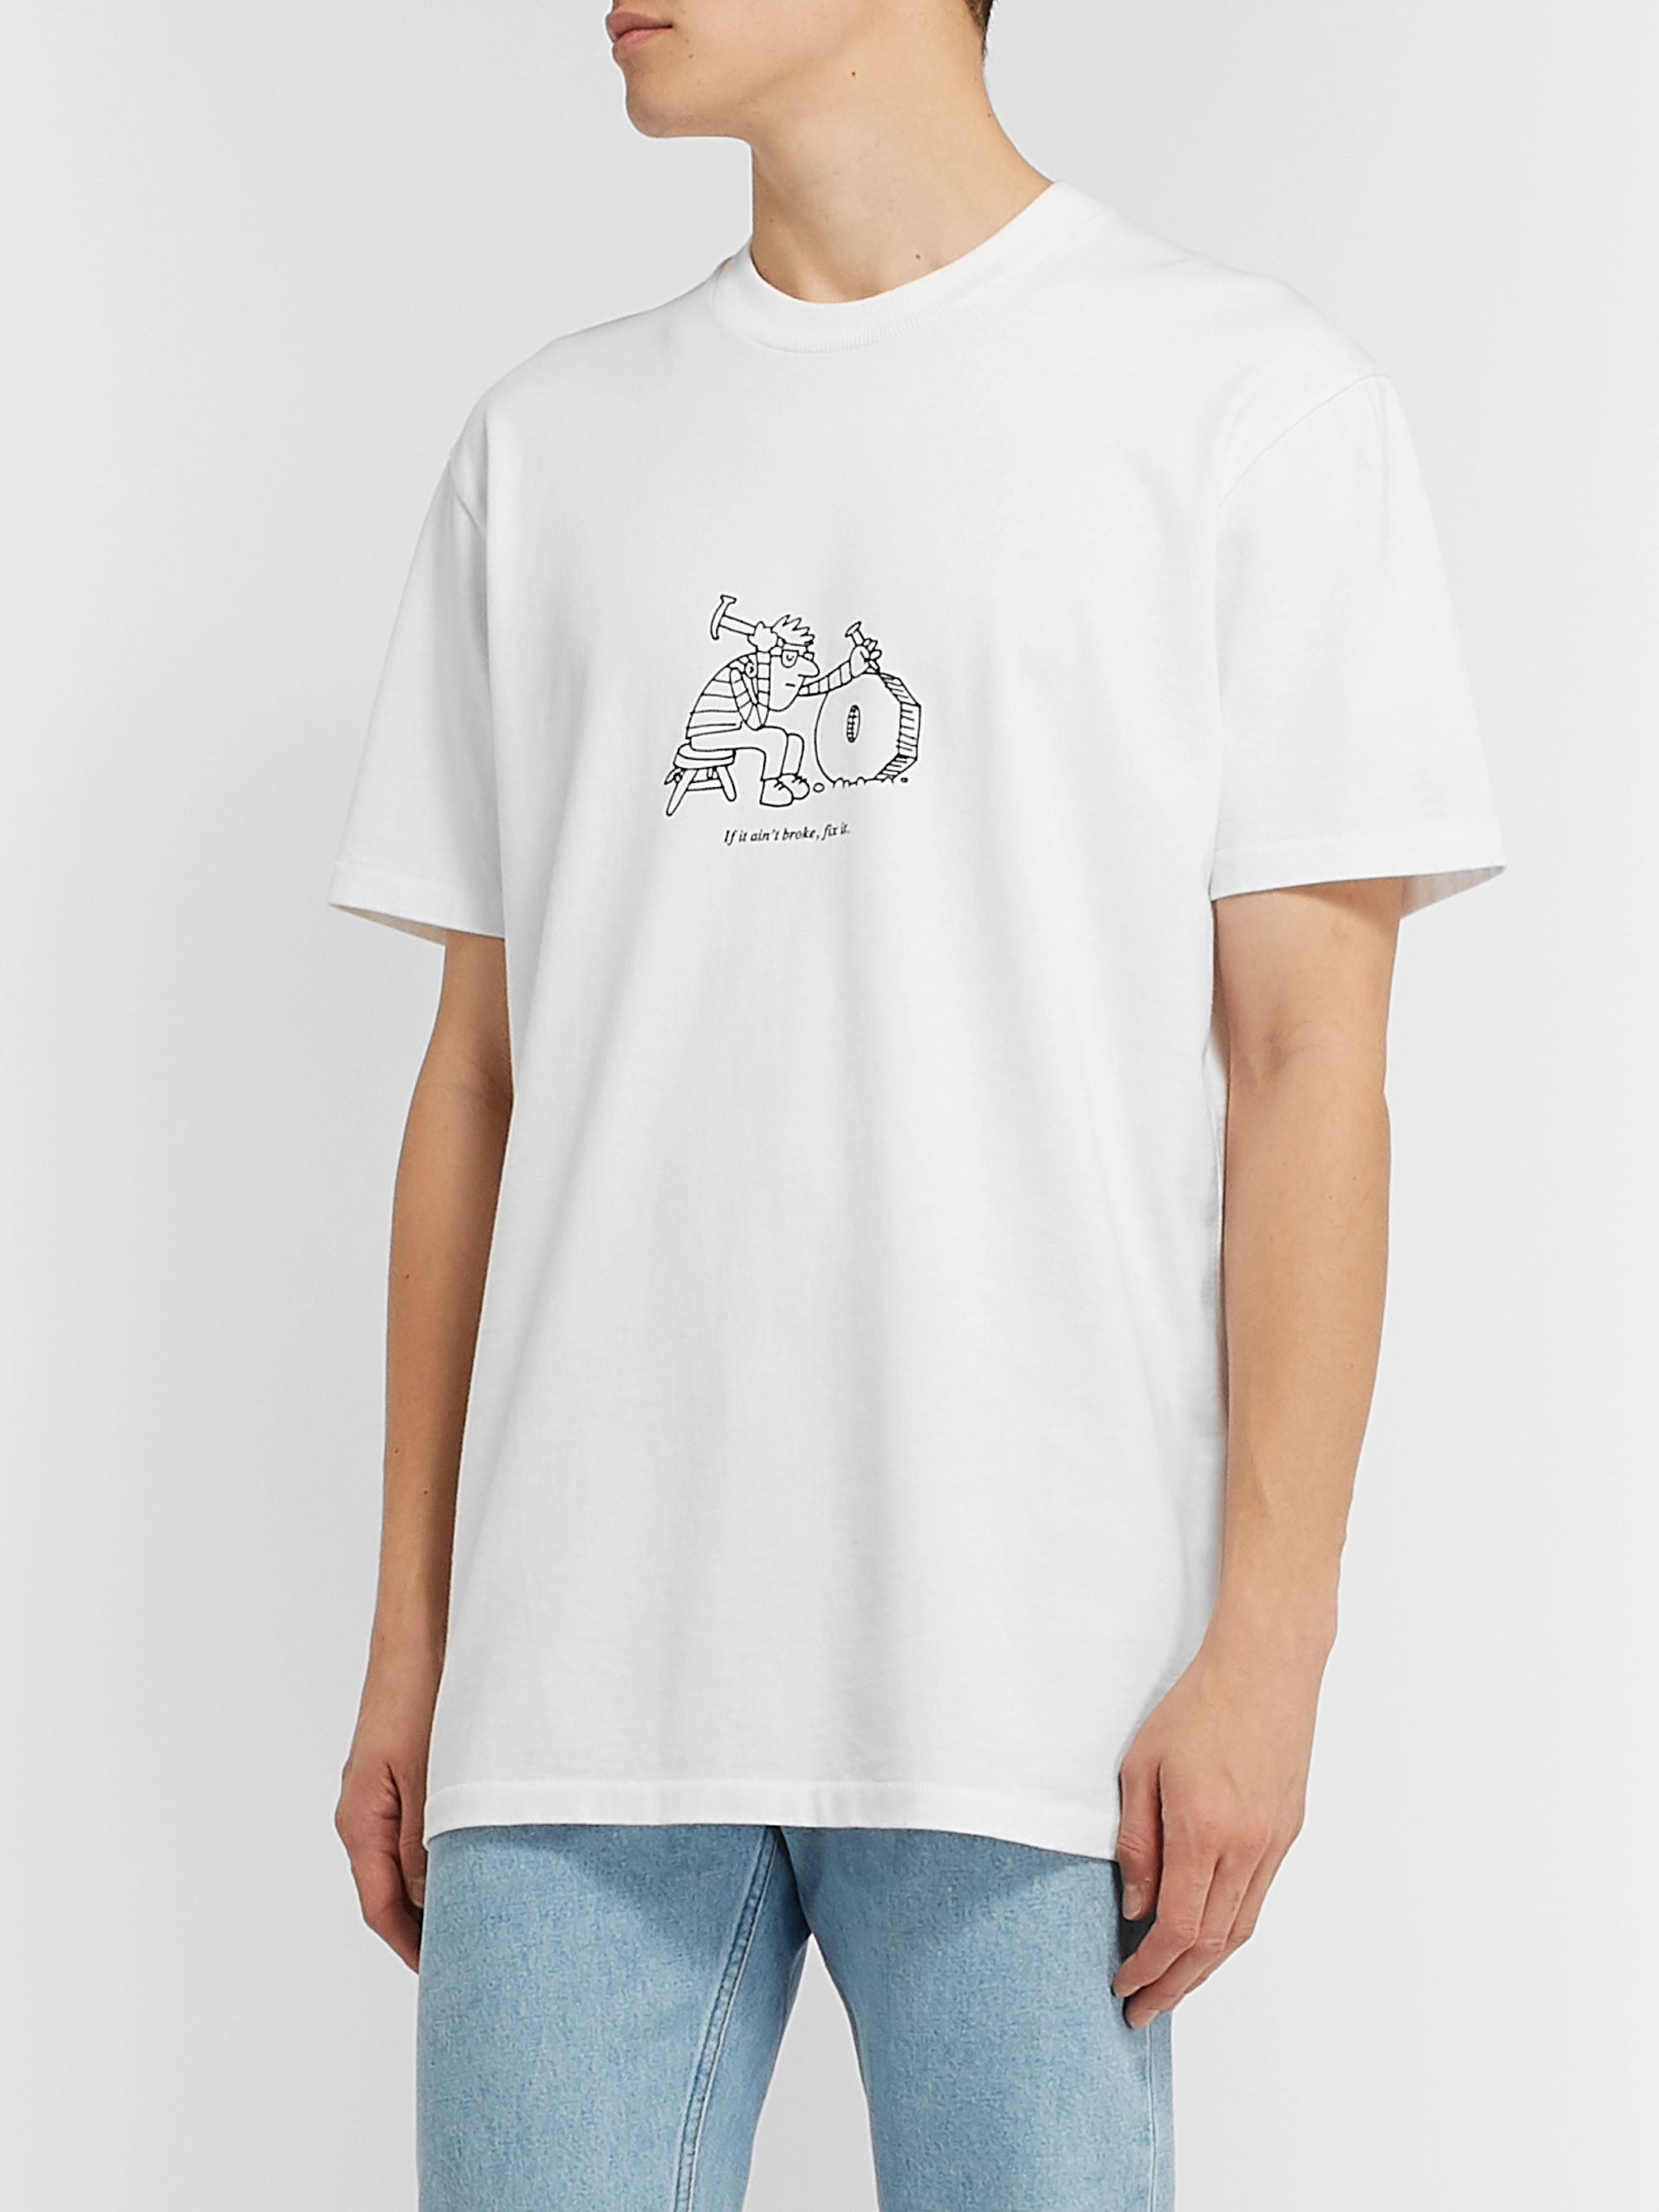 A.P.C. + JJJJound Logo-Print Cotton-Jersey T-Shirt